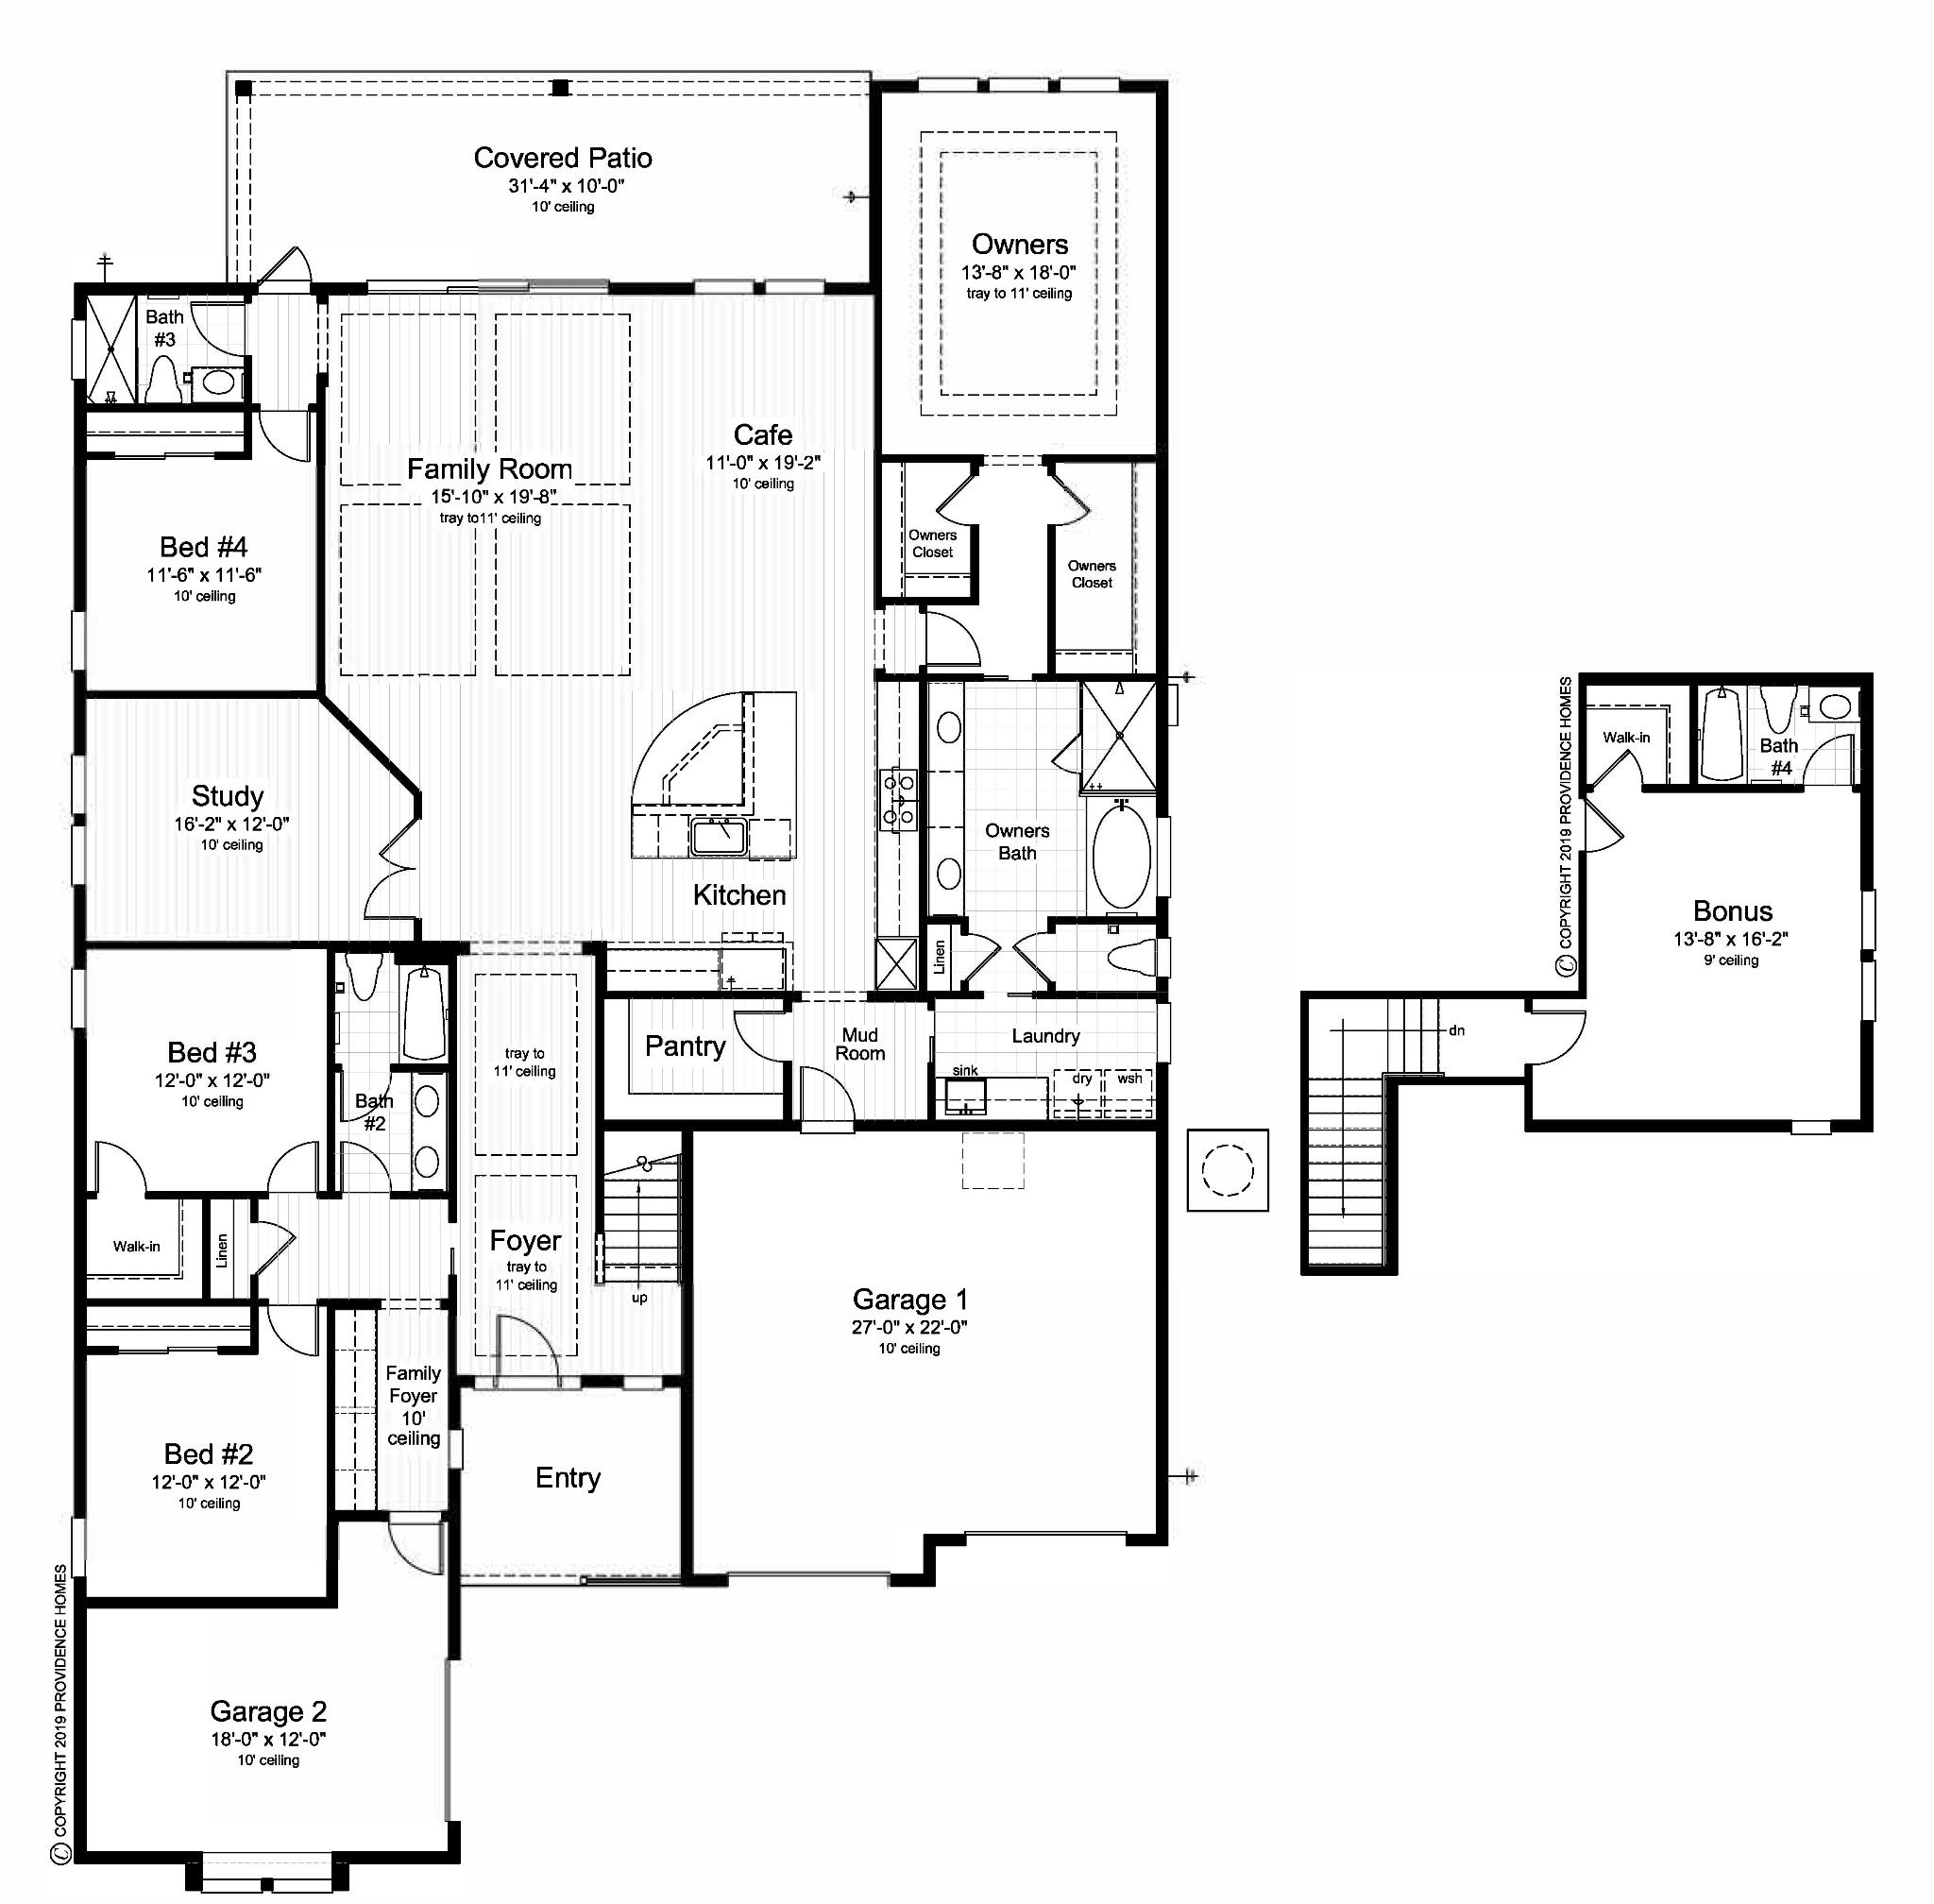 CO140 Floorplan